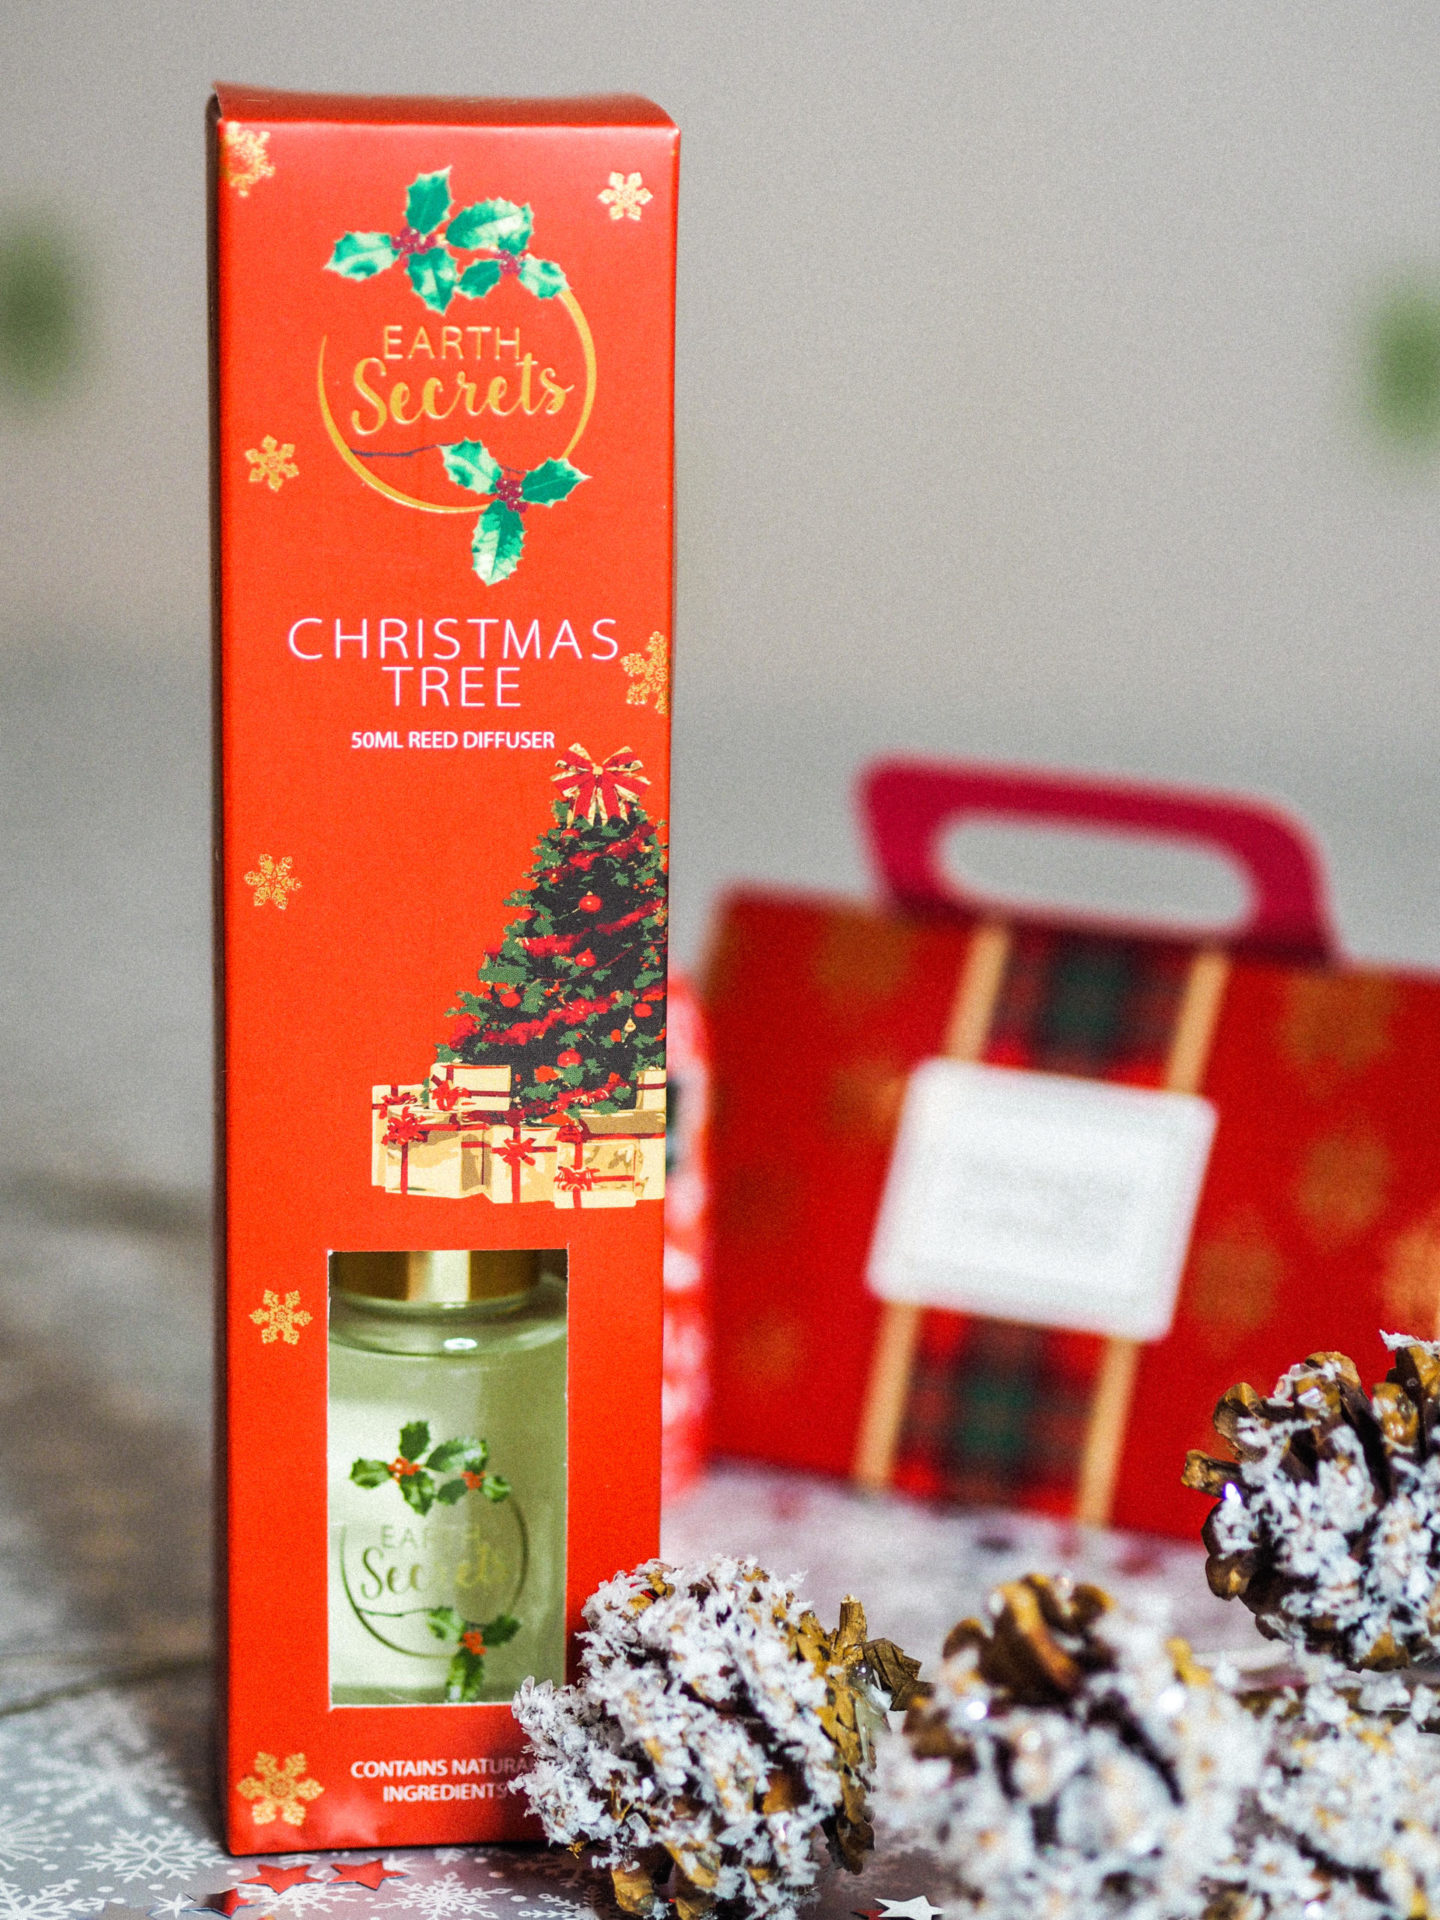 Get Festive with Home Fragrances at Notino.co.uk - Rachel Nicole UK Blogger